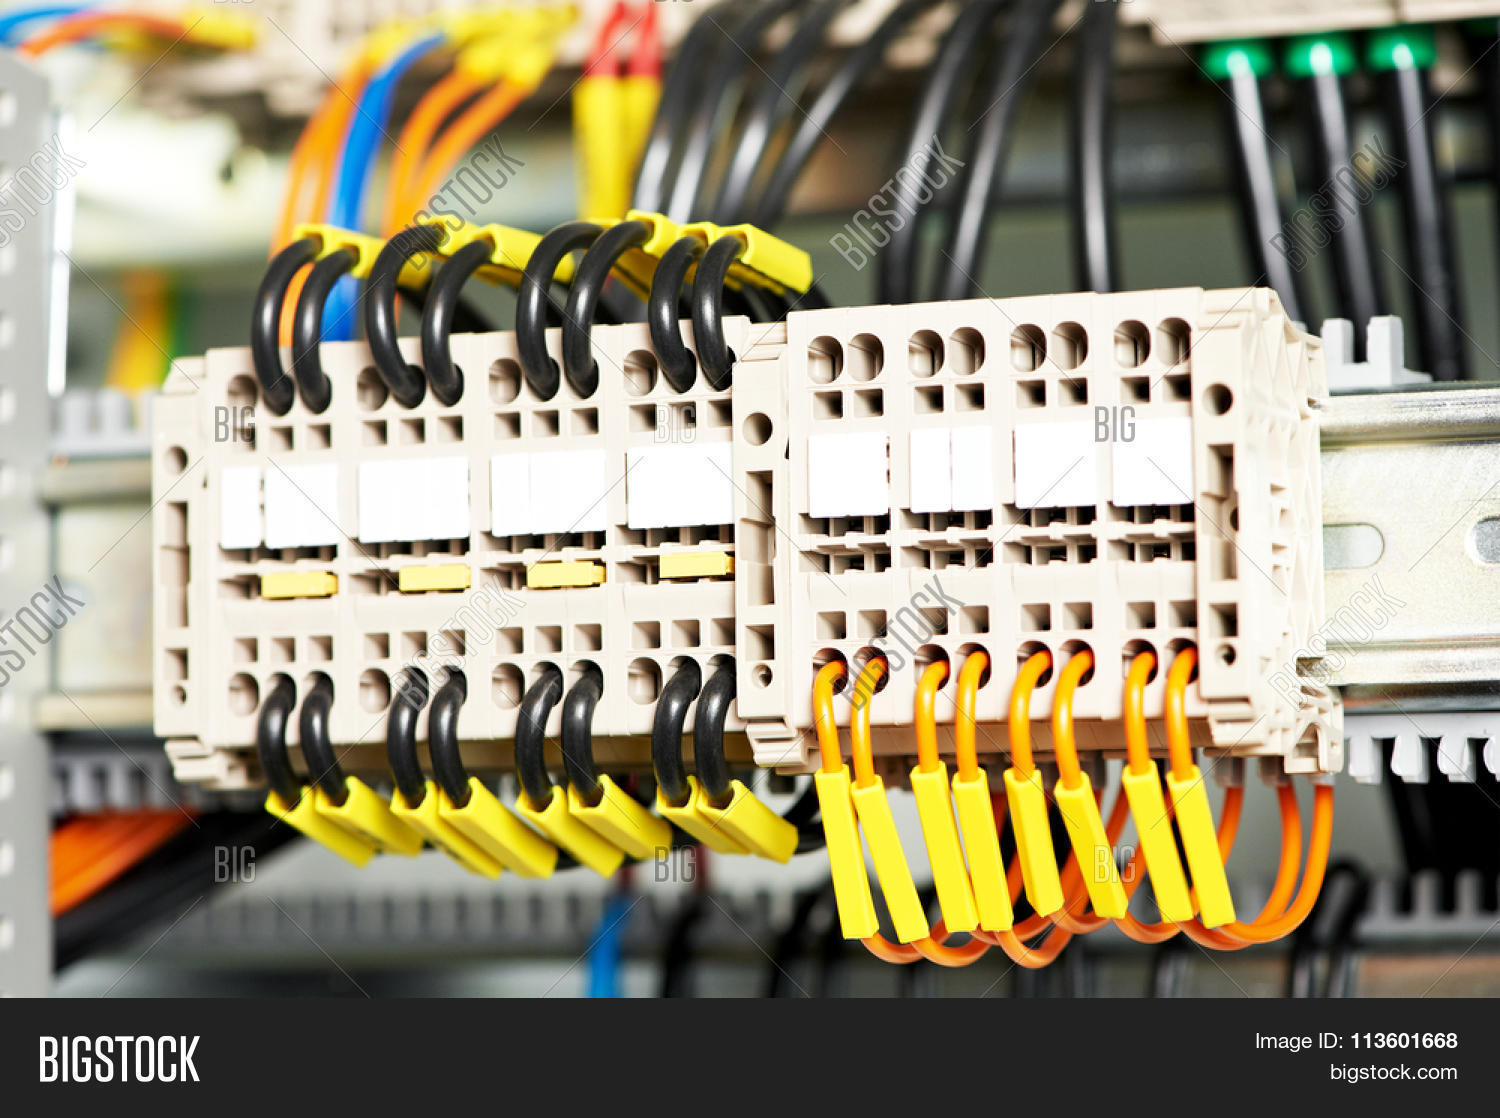 Automatic Electrical Image Photo Free Trial Bigstock Wiring Panel Board Connector Switch In Power Lines Located Inside Of An Industrial Control